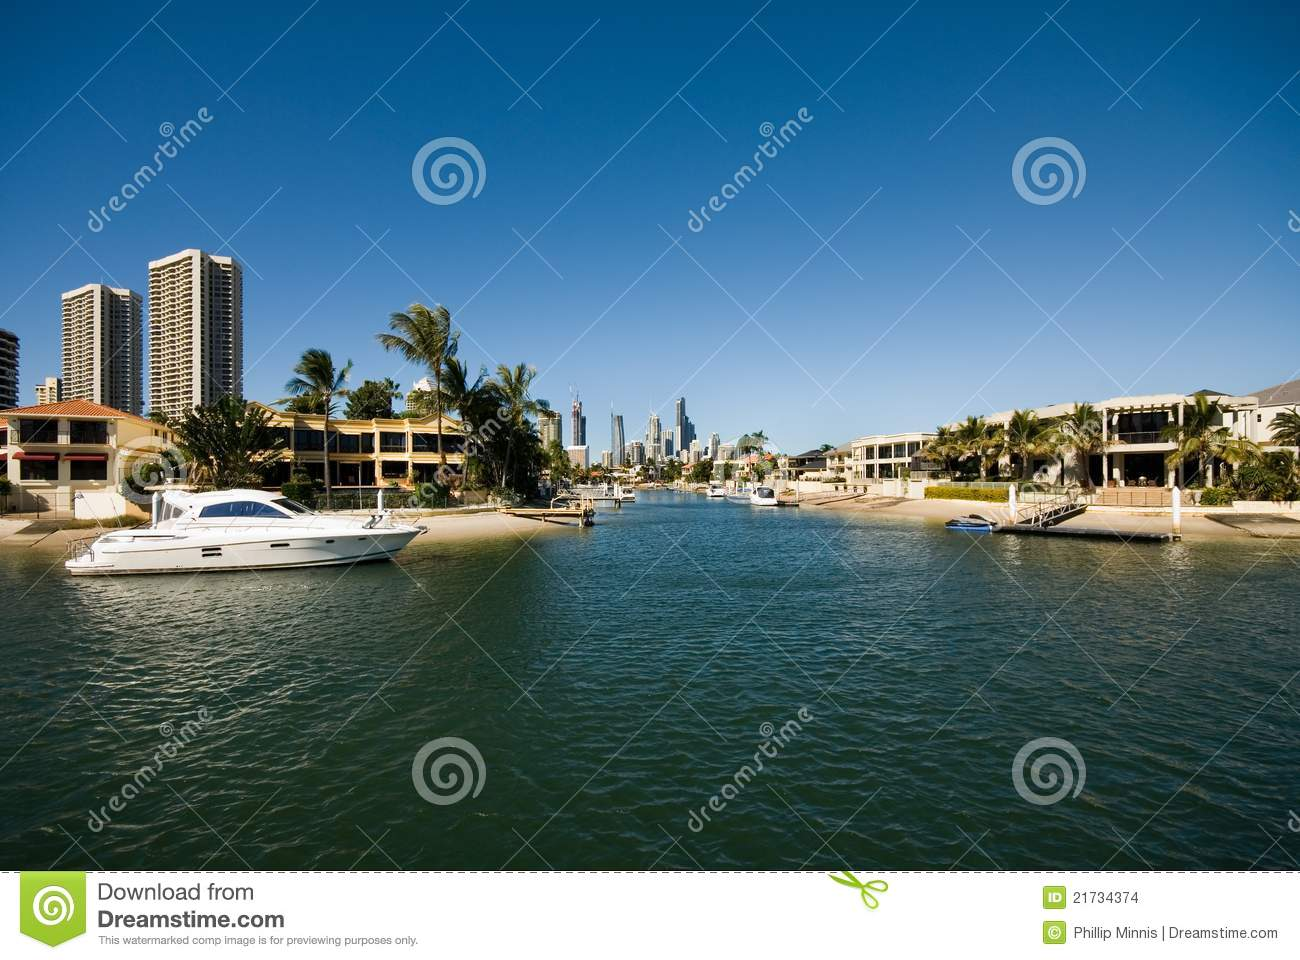 The Waterway Apartment Homes